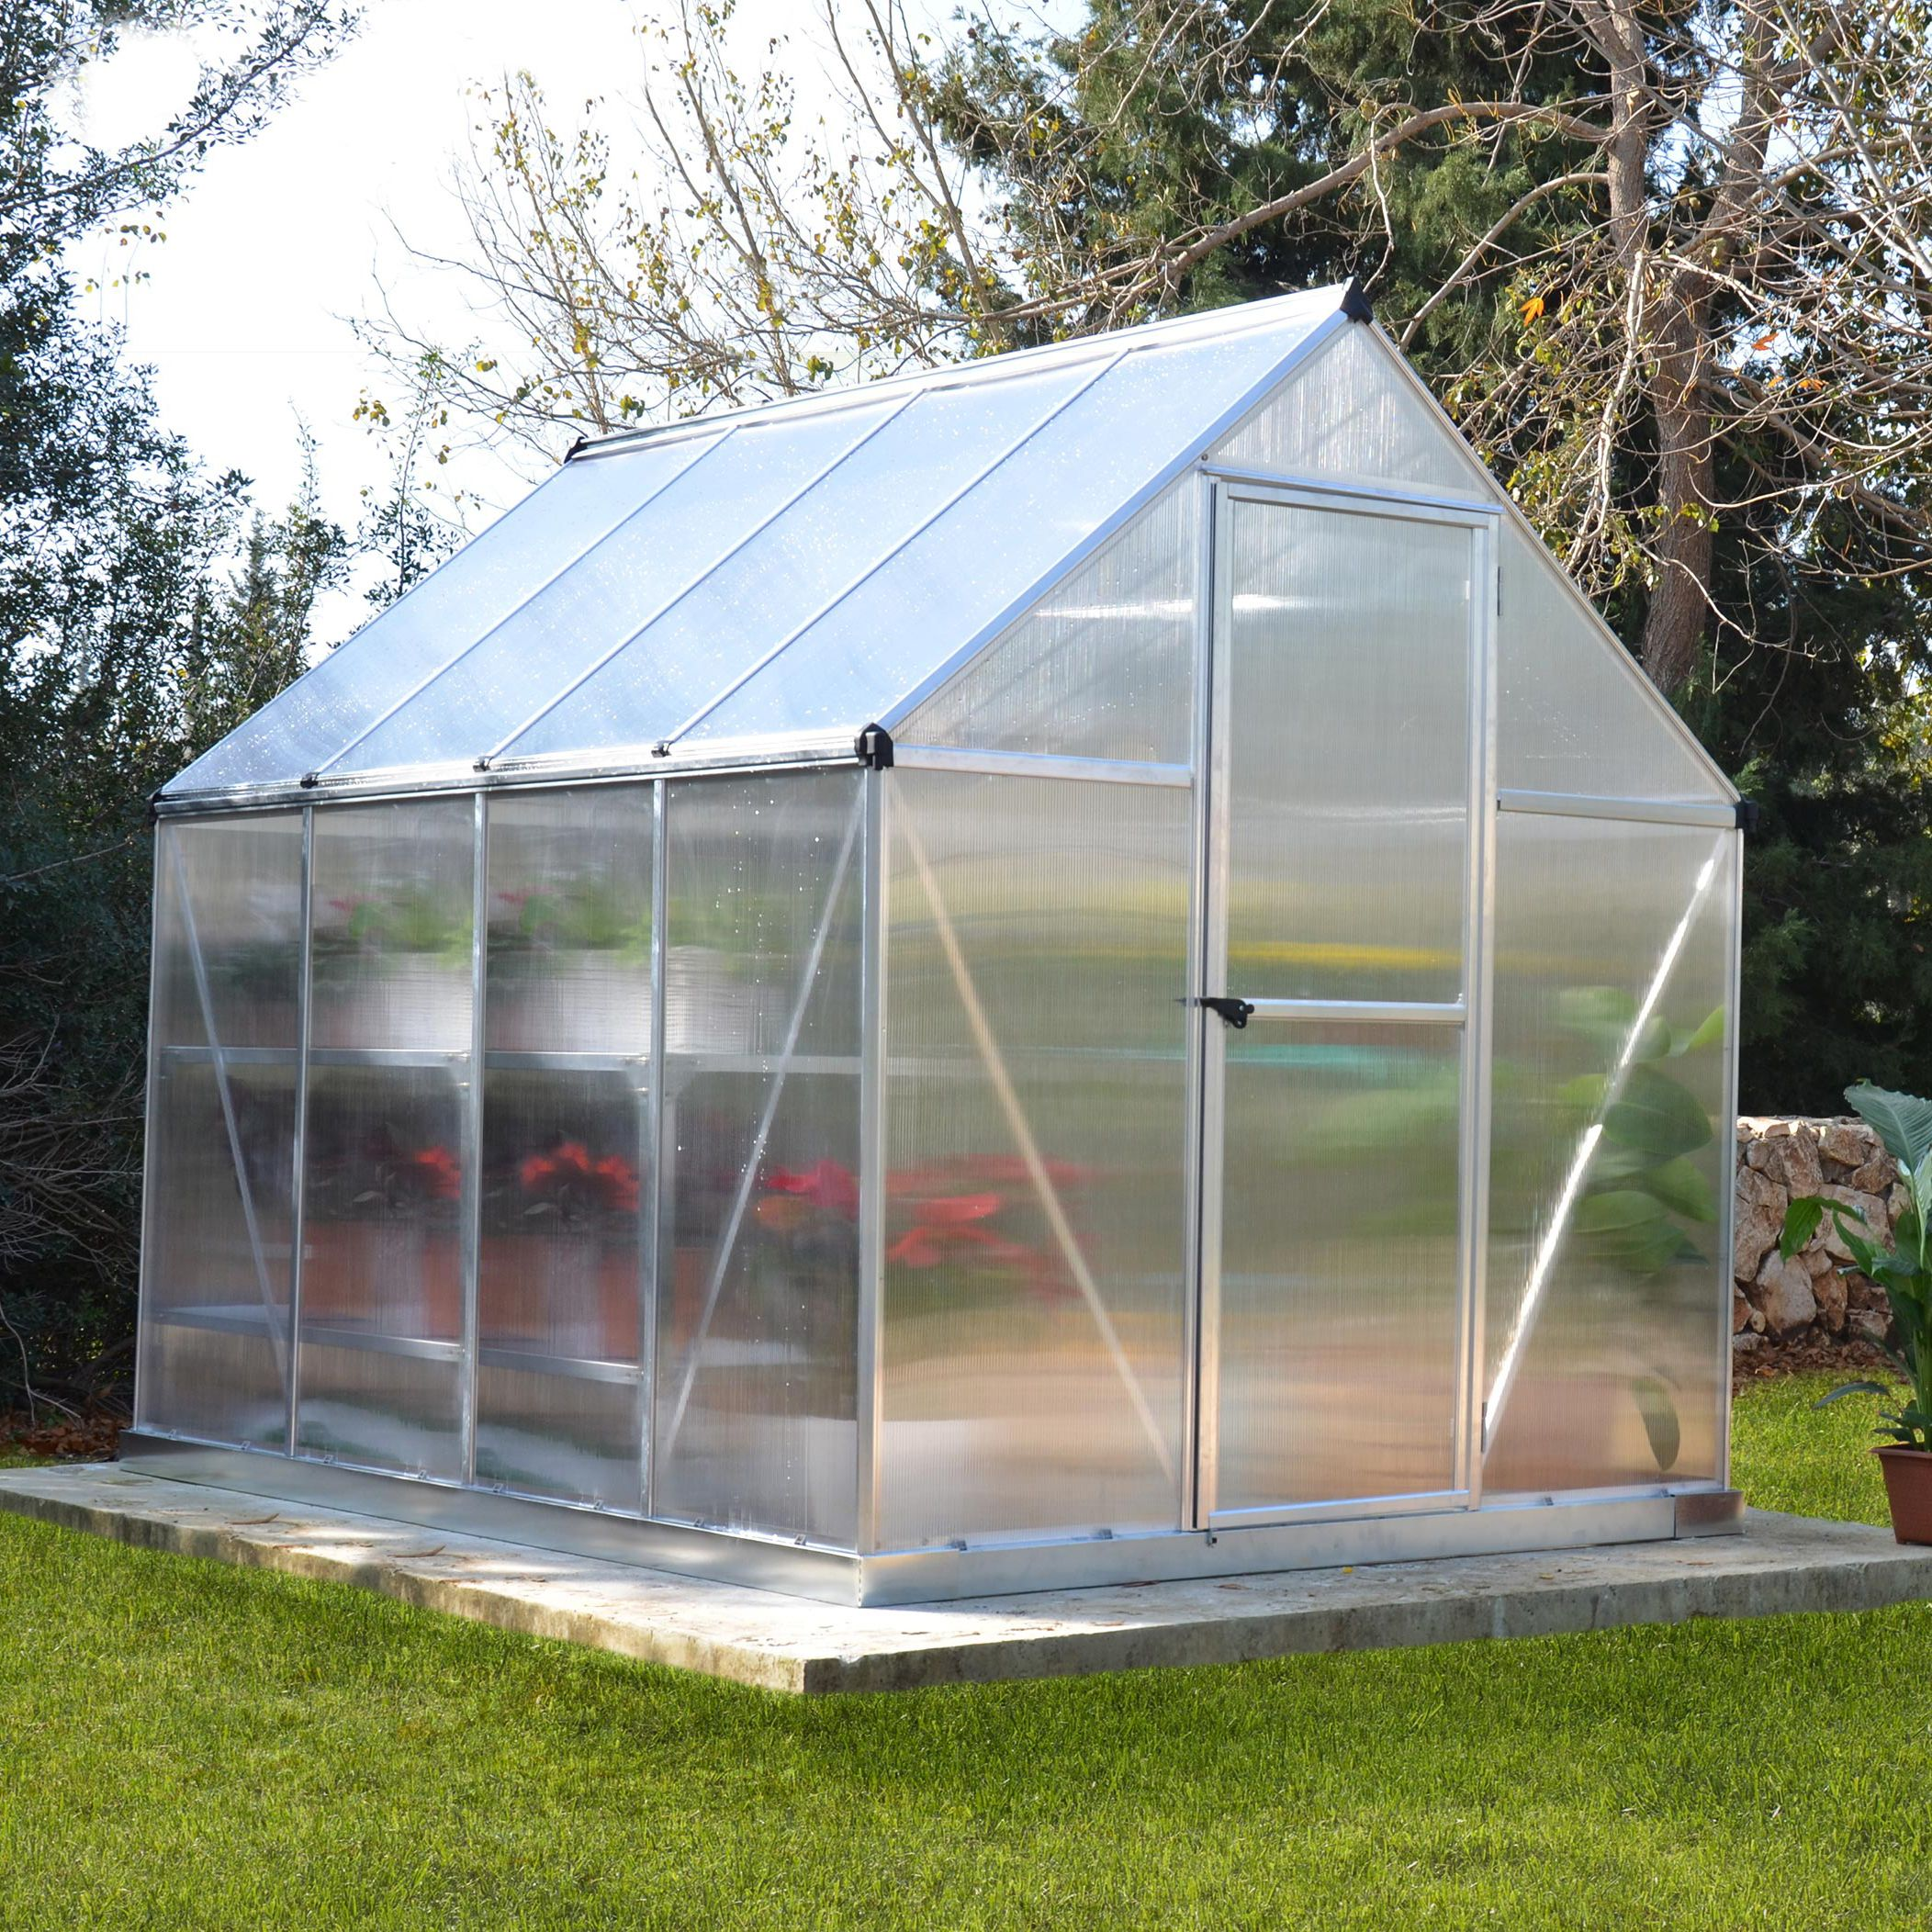 Palram Mythos 6x8 Polycarbonate Greenhouse Departments